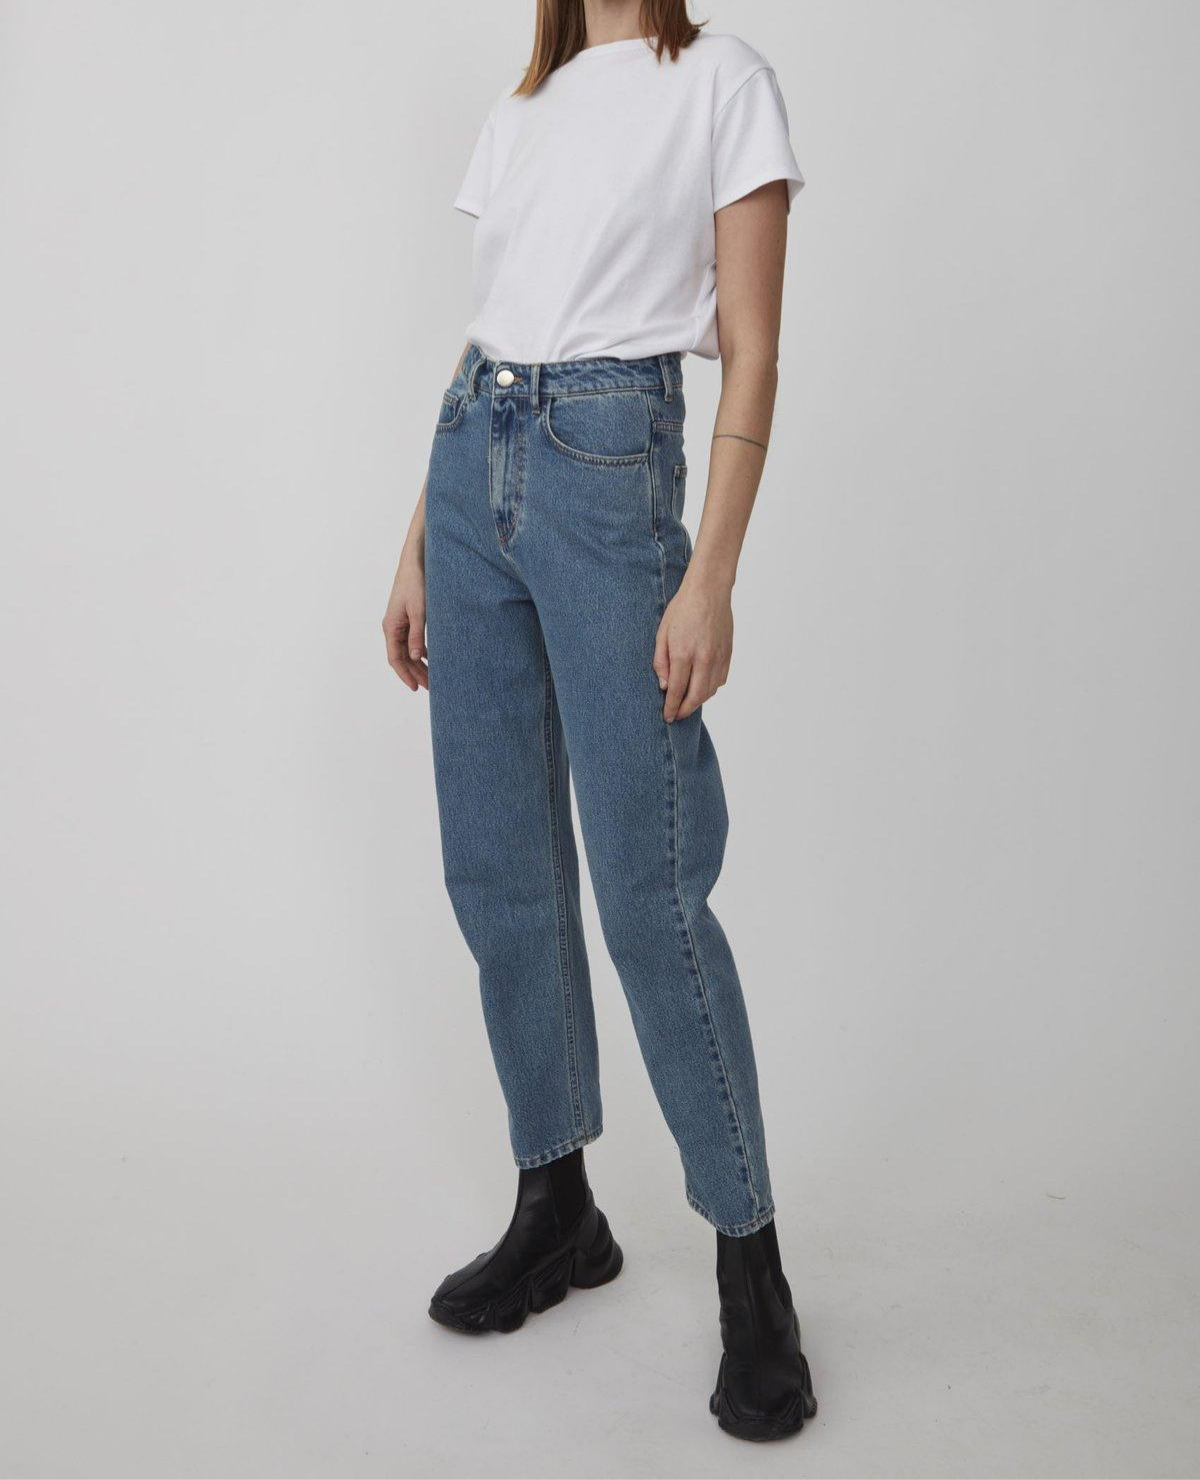 JUST FEMALE Stormy Jeans / Light Blue Denim